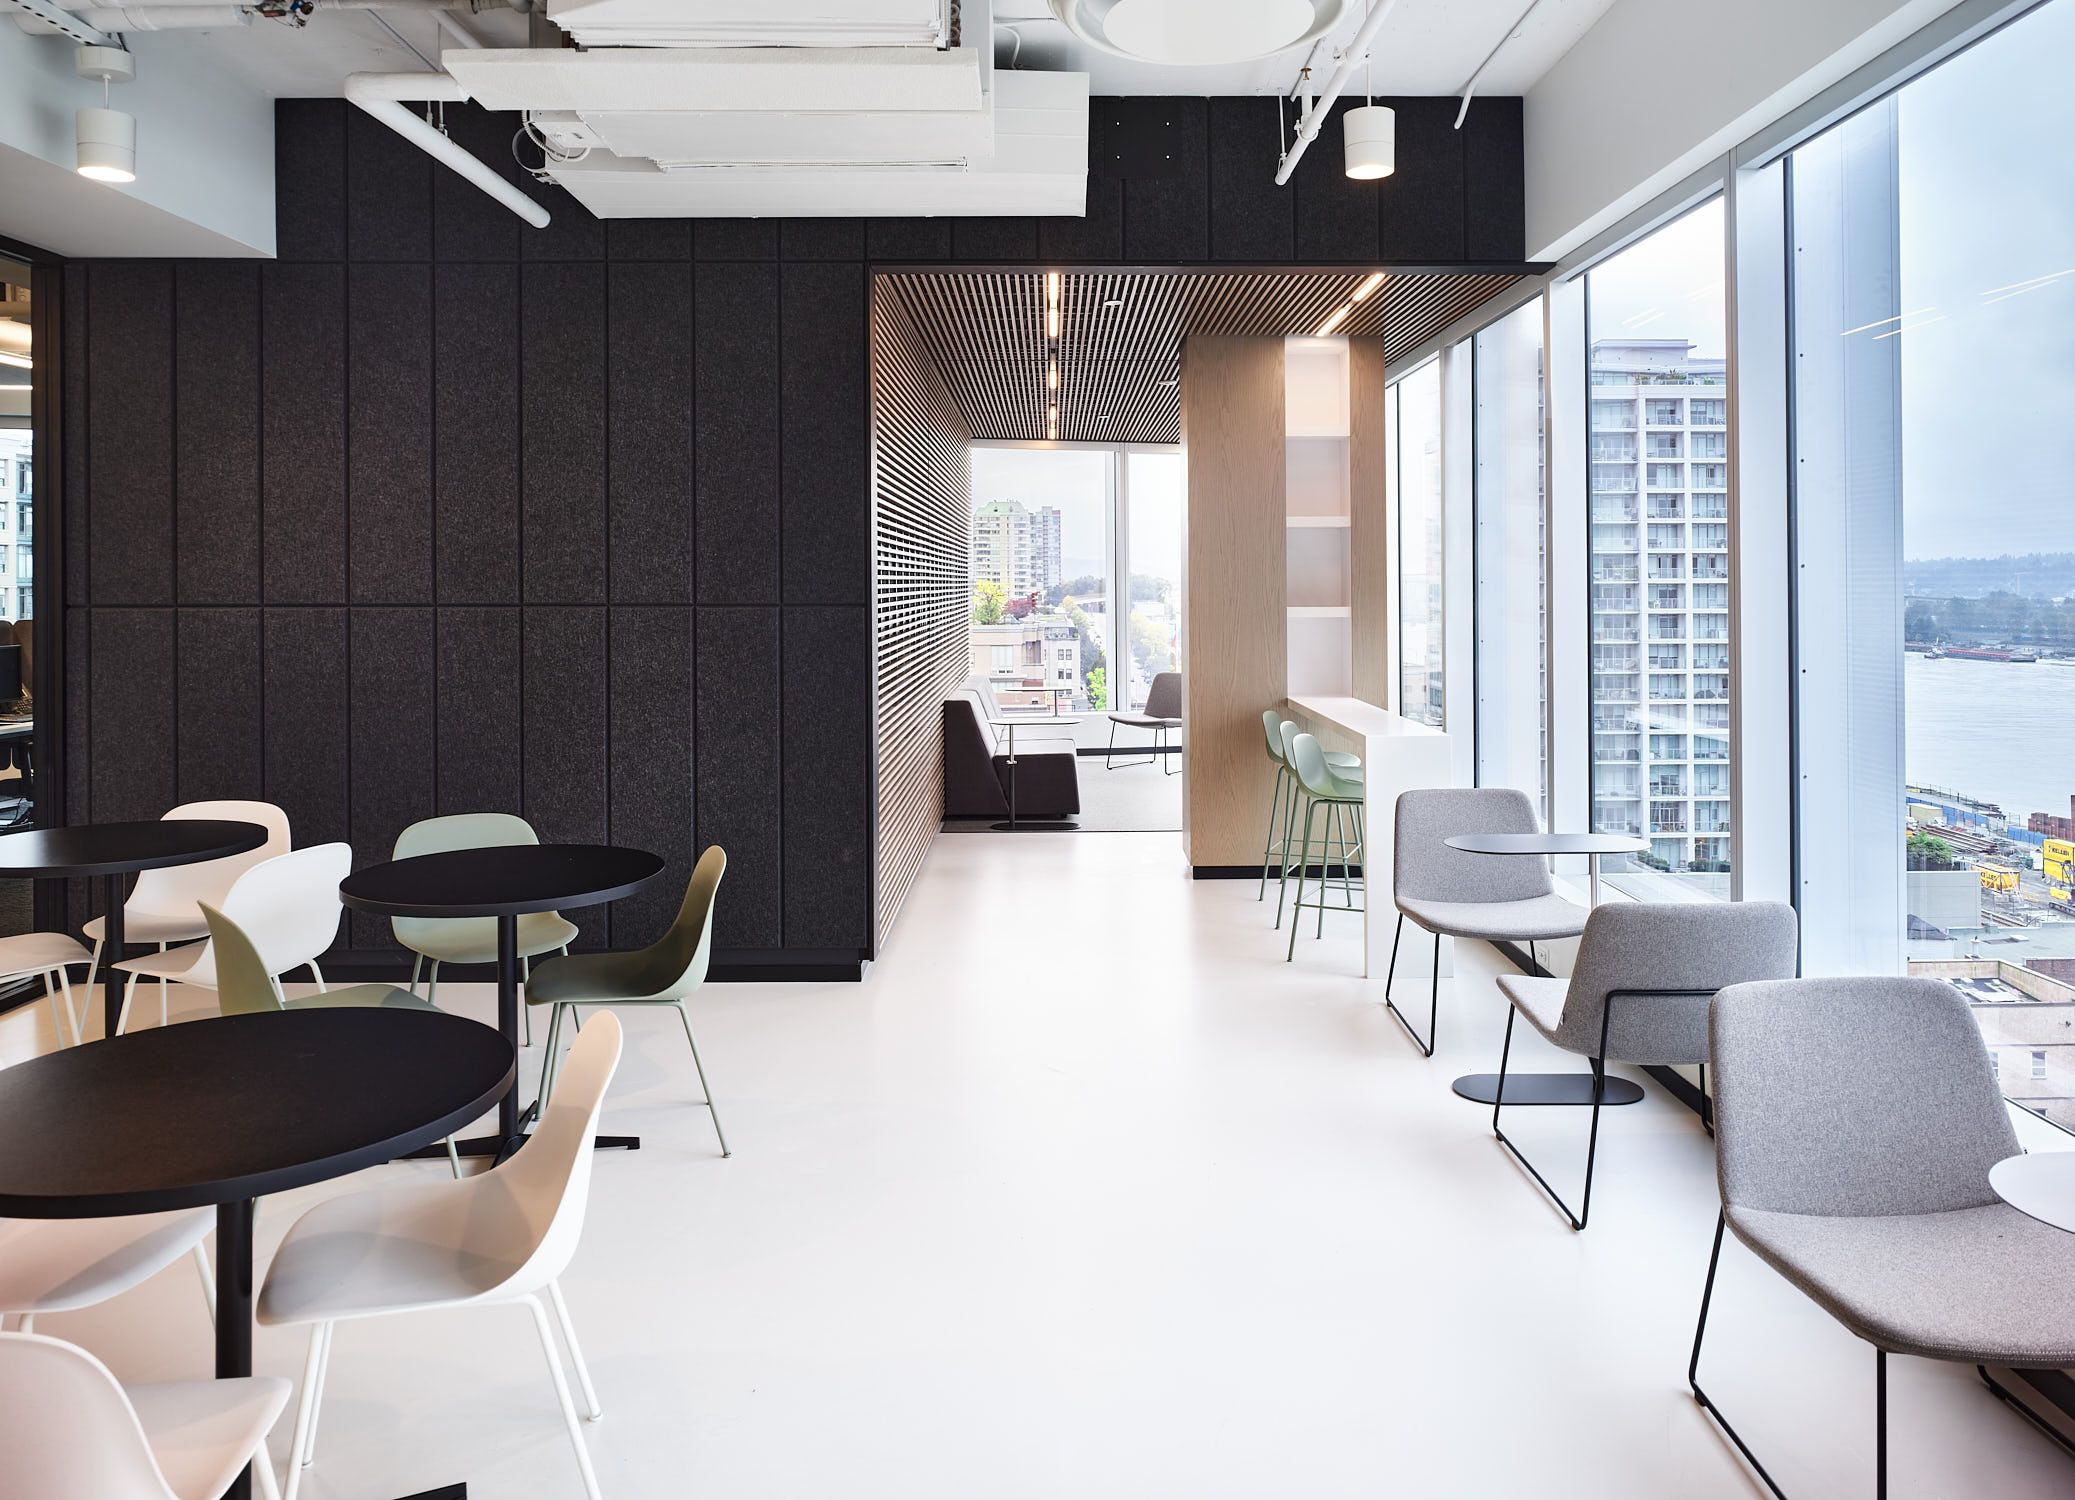 Interior Design By Cutler For Panago Call Centre Design Vancouver In 2020 Commercial Interior Design Interior Design Architecture Design